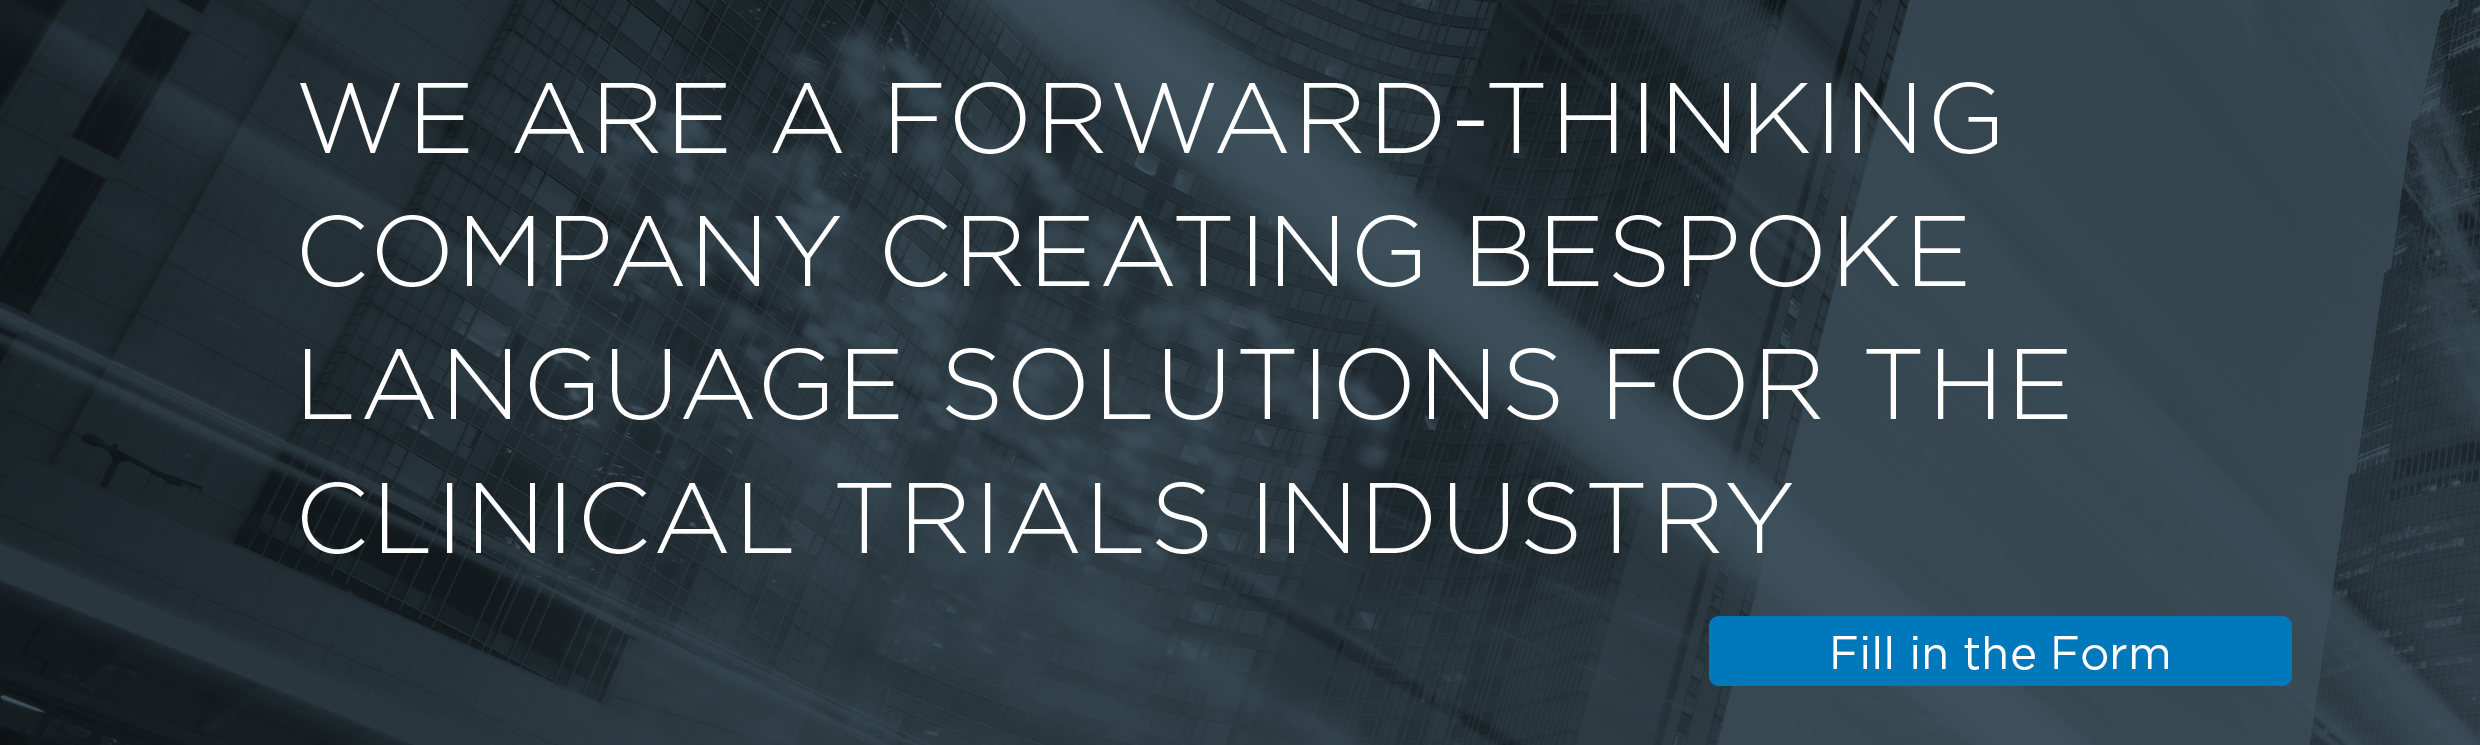 We are a forward-thinking company creating bespoke language solutions for the clinical trials industry. Fill in the form.